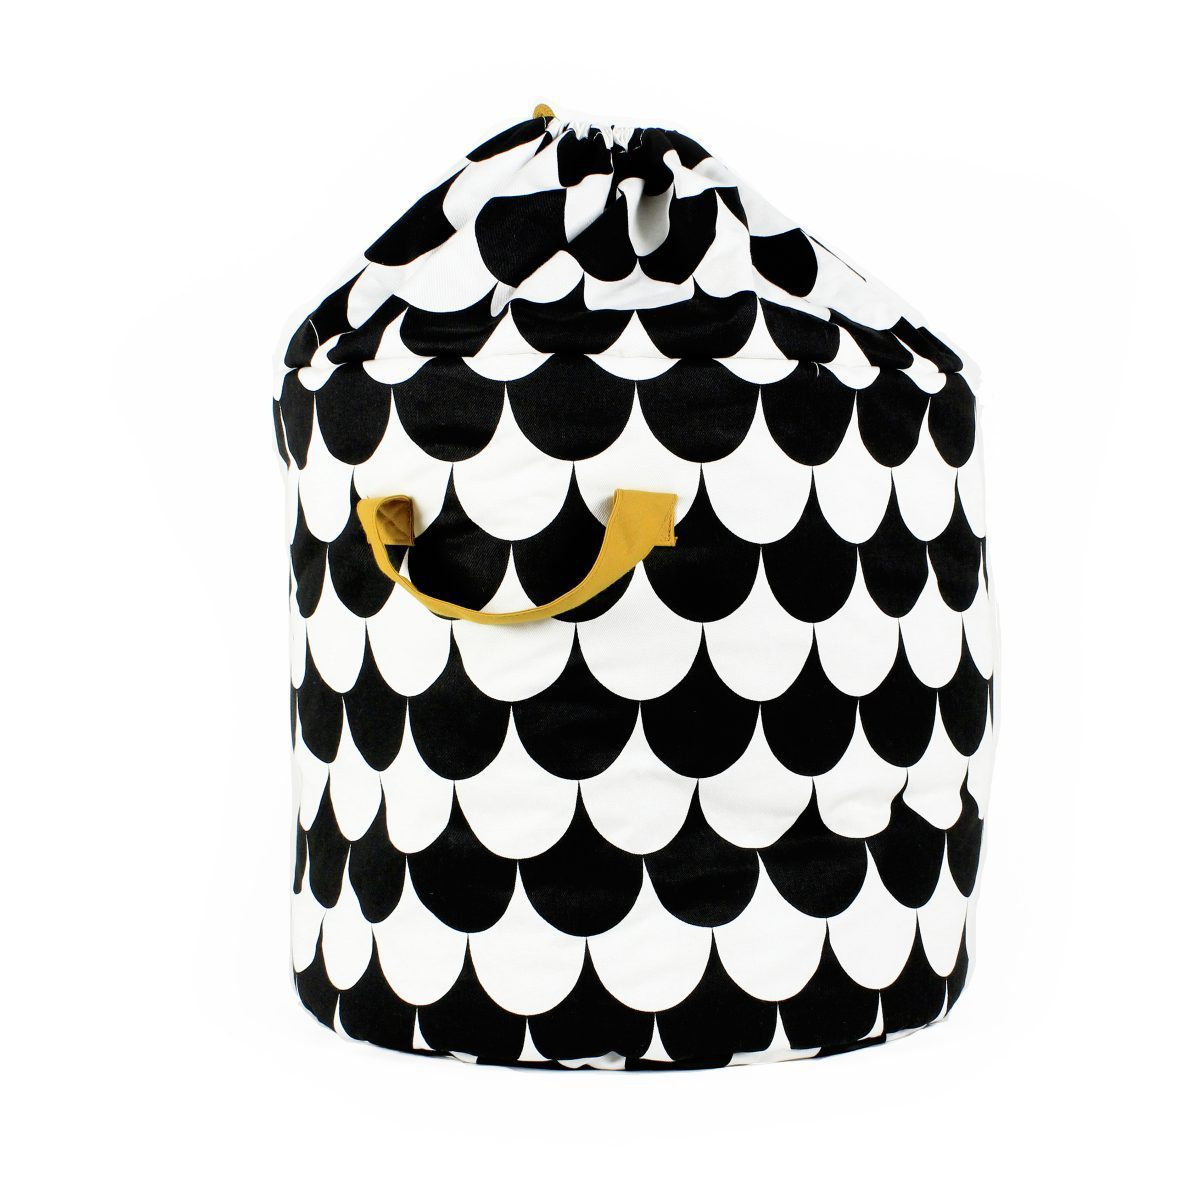 Nobodinoz Baobab toy bag scales in black